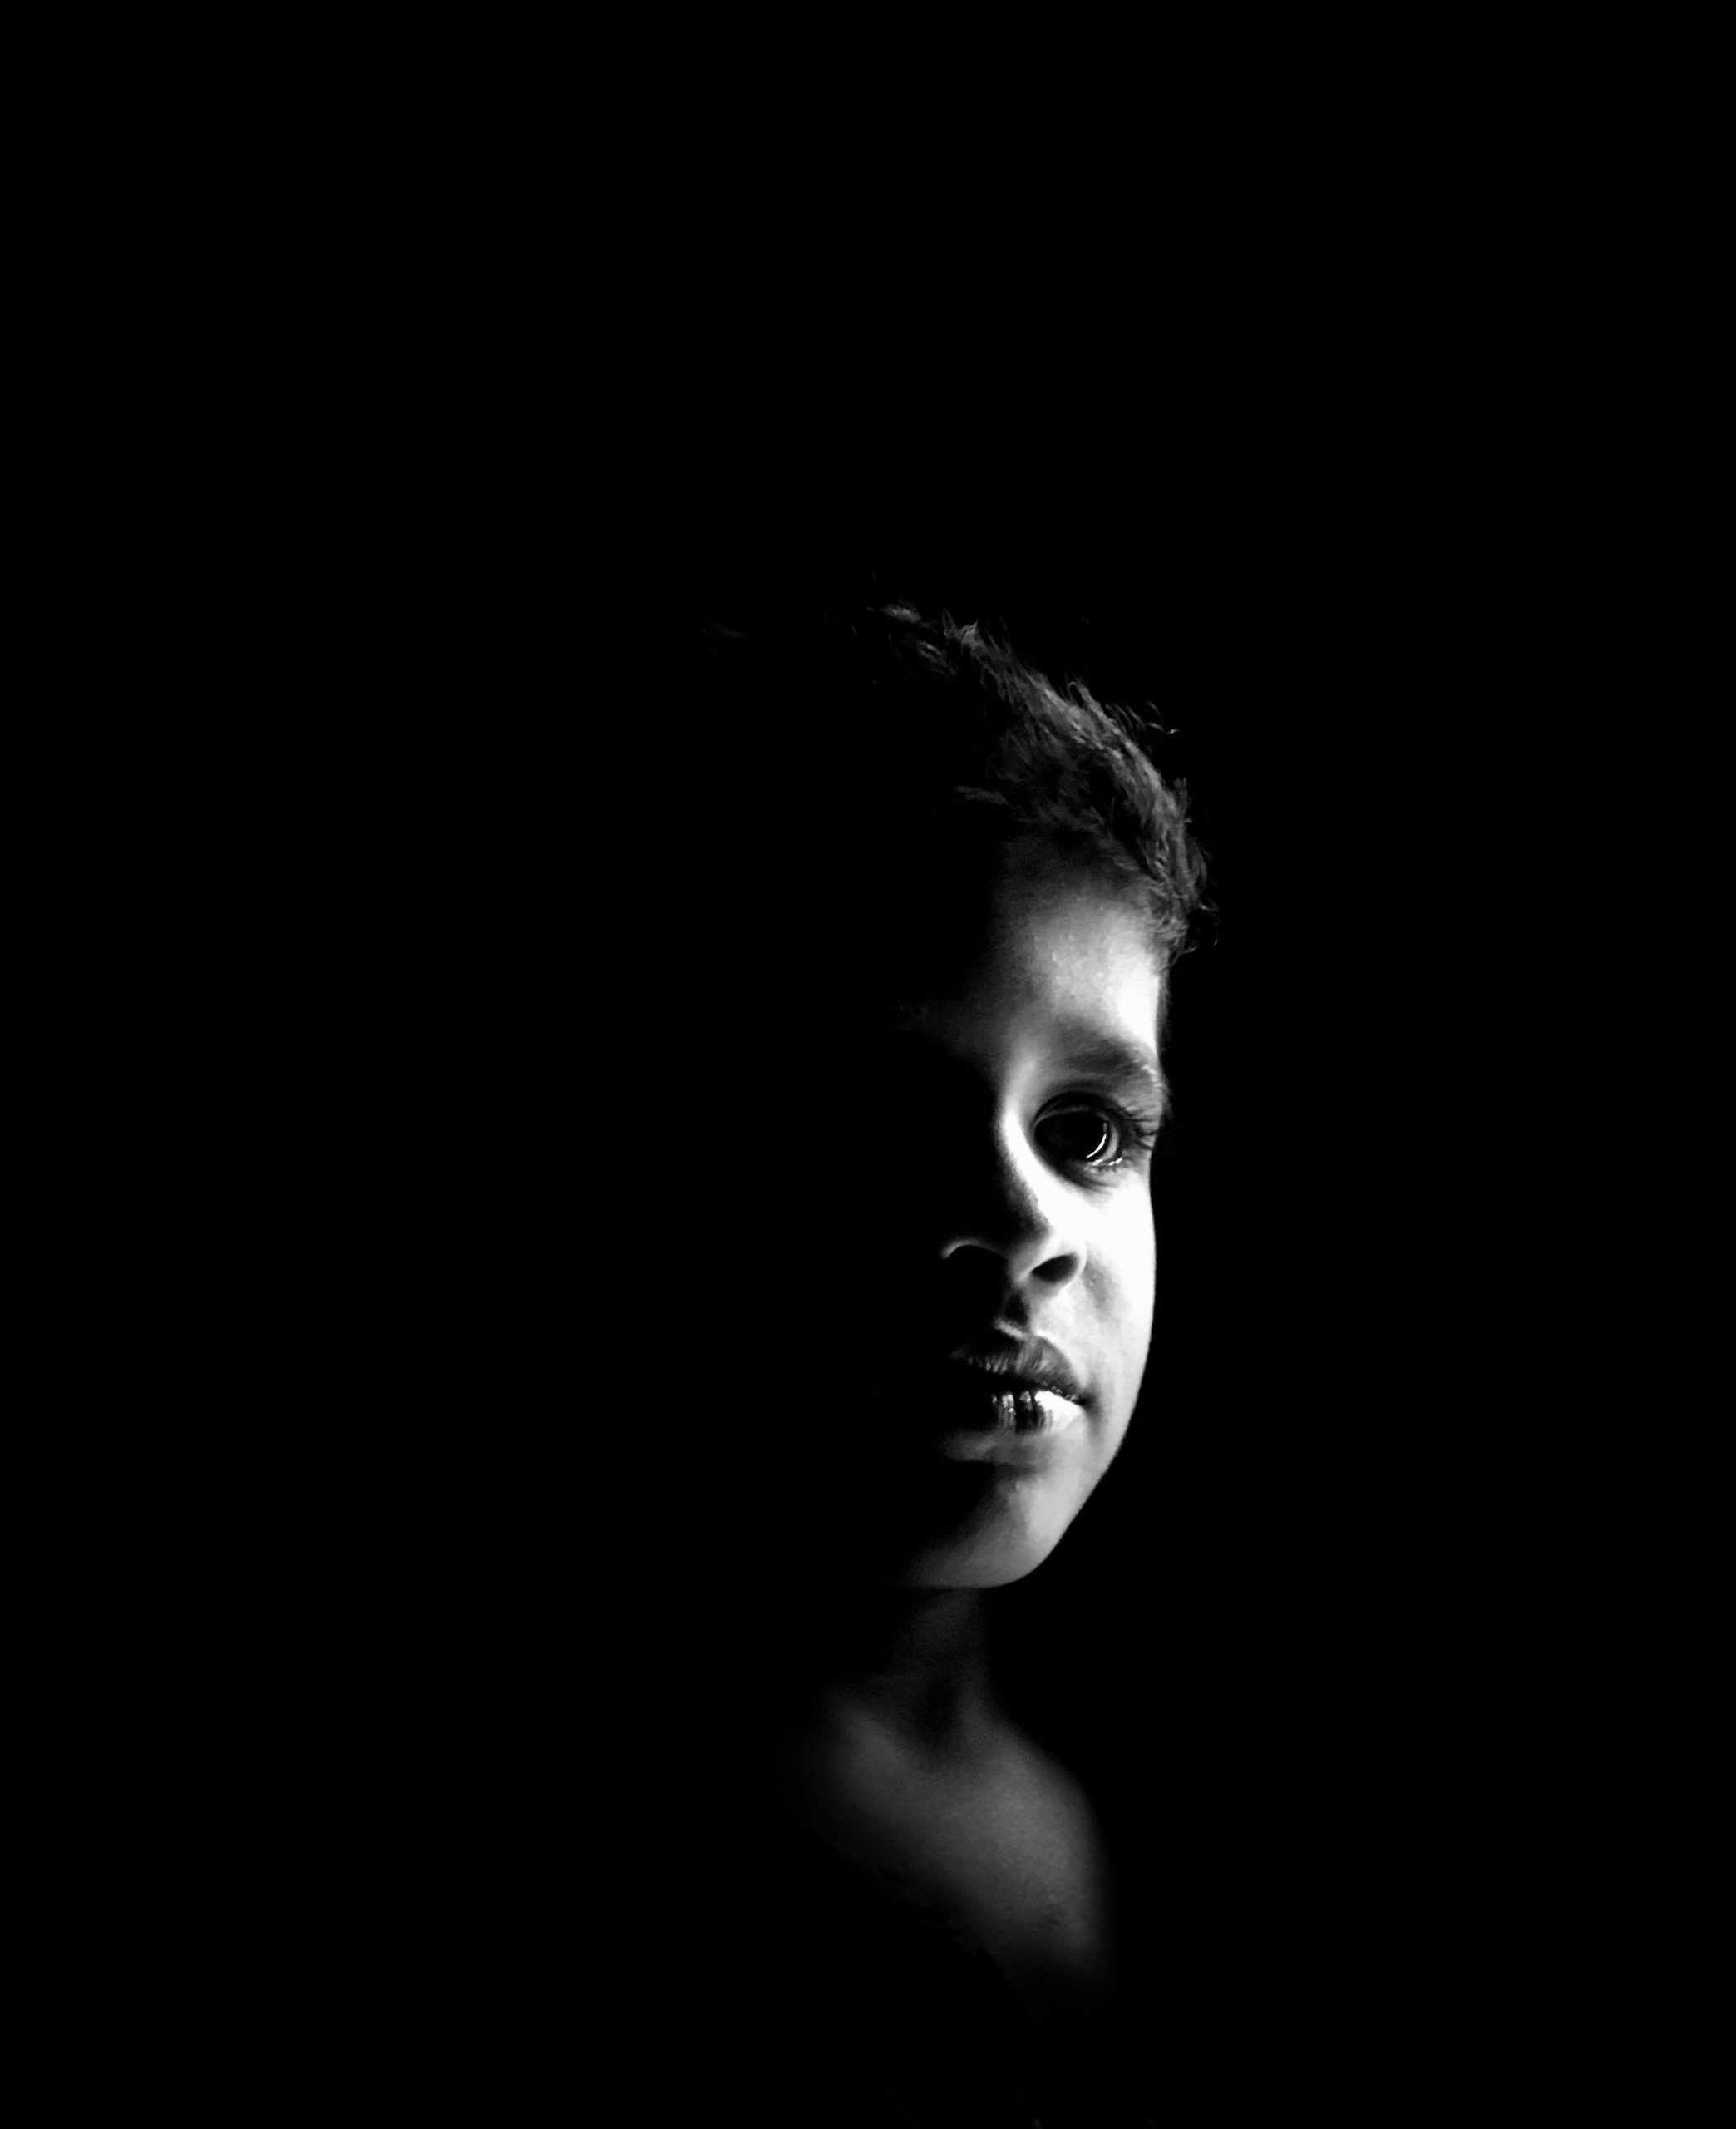 Black and white portrait of a kid